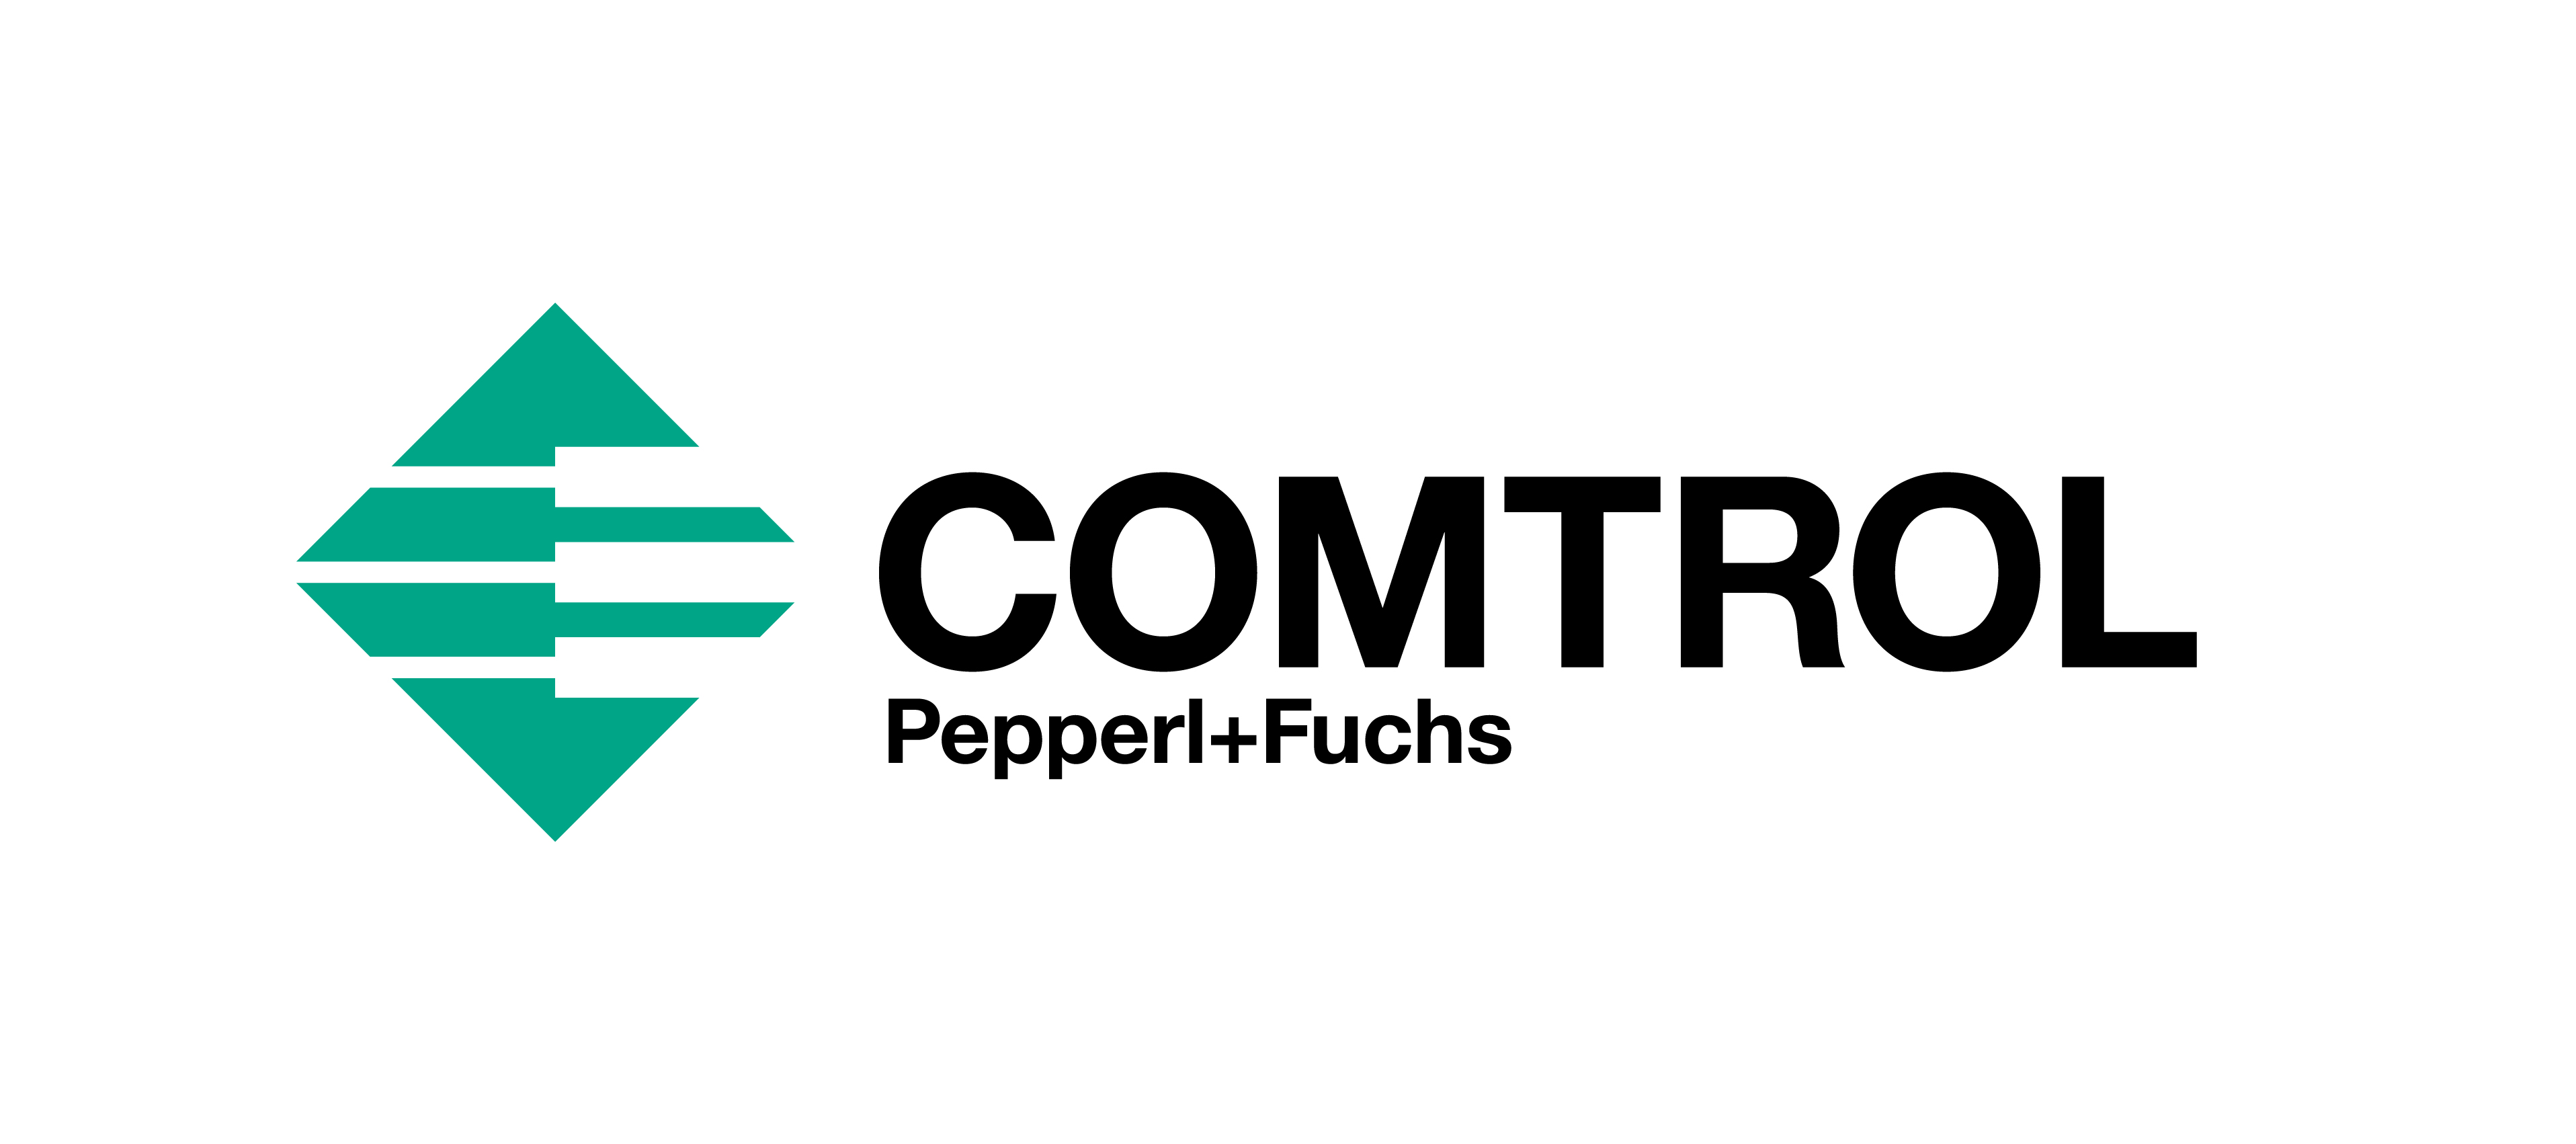 Pepperl+Fuchs Comtrol, Inc.